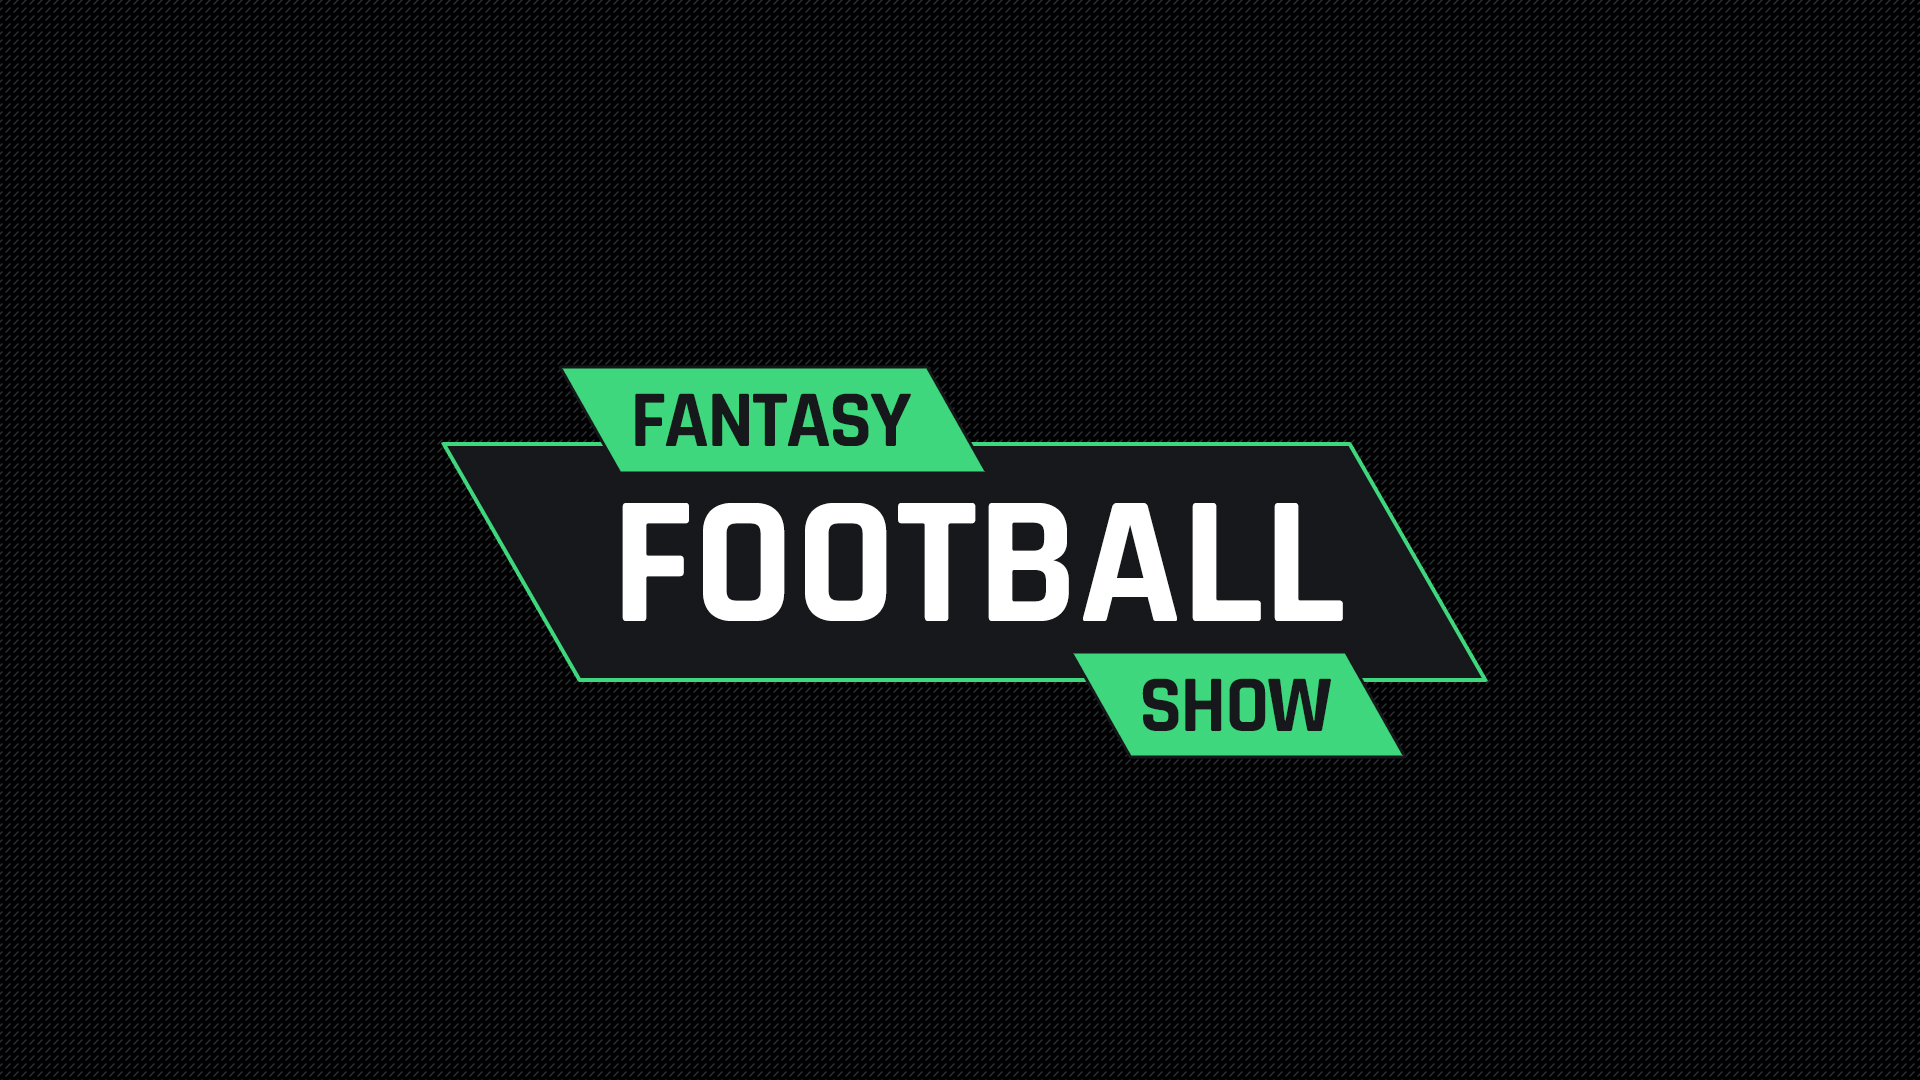 Fantasy Football Show Podcast Week 7: Waiver pickups, sleepers, start 'em/sit 'em advice